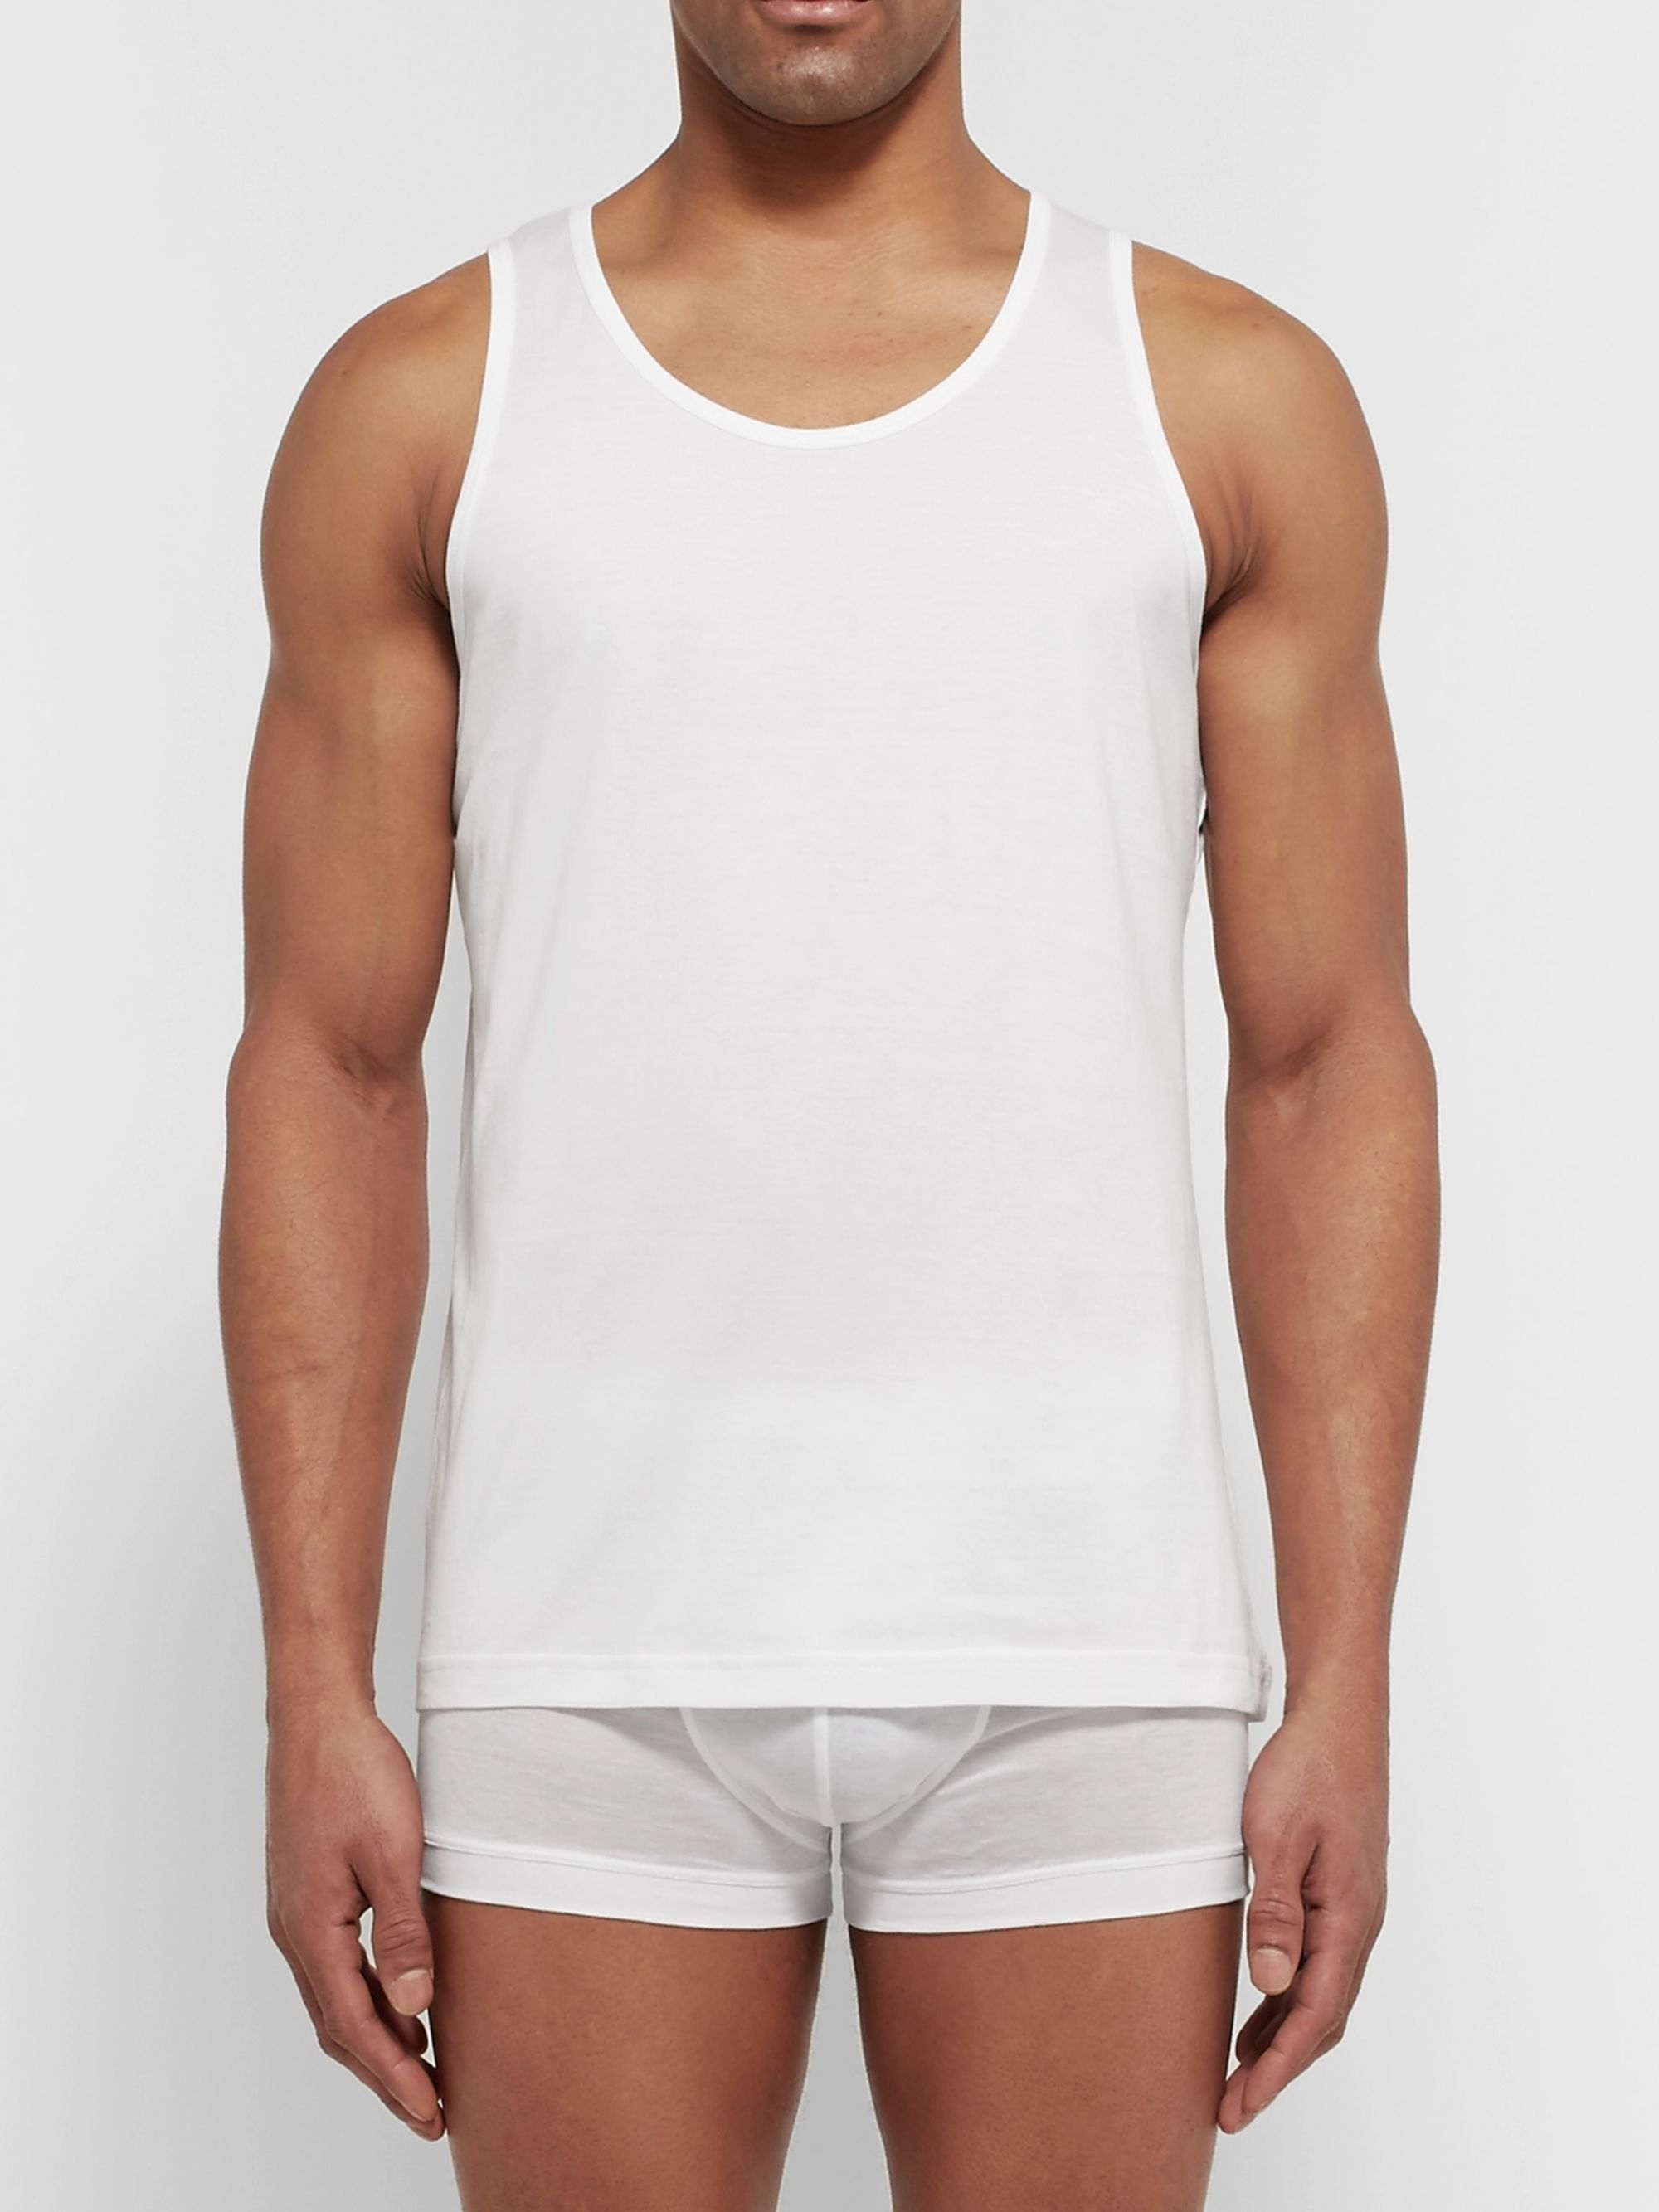 SUNSPEL Cotton Underwear Tank Top